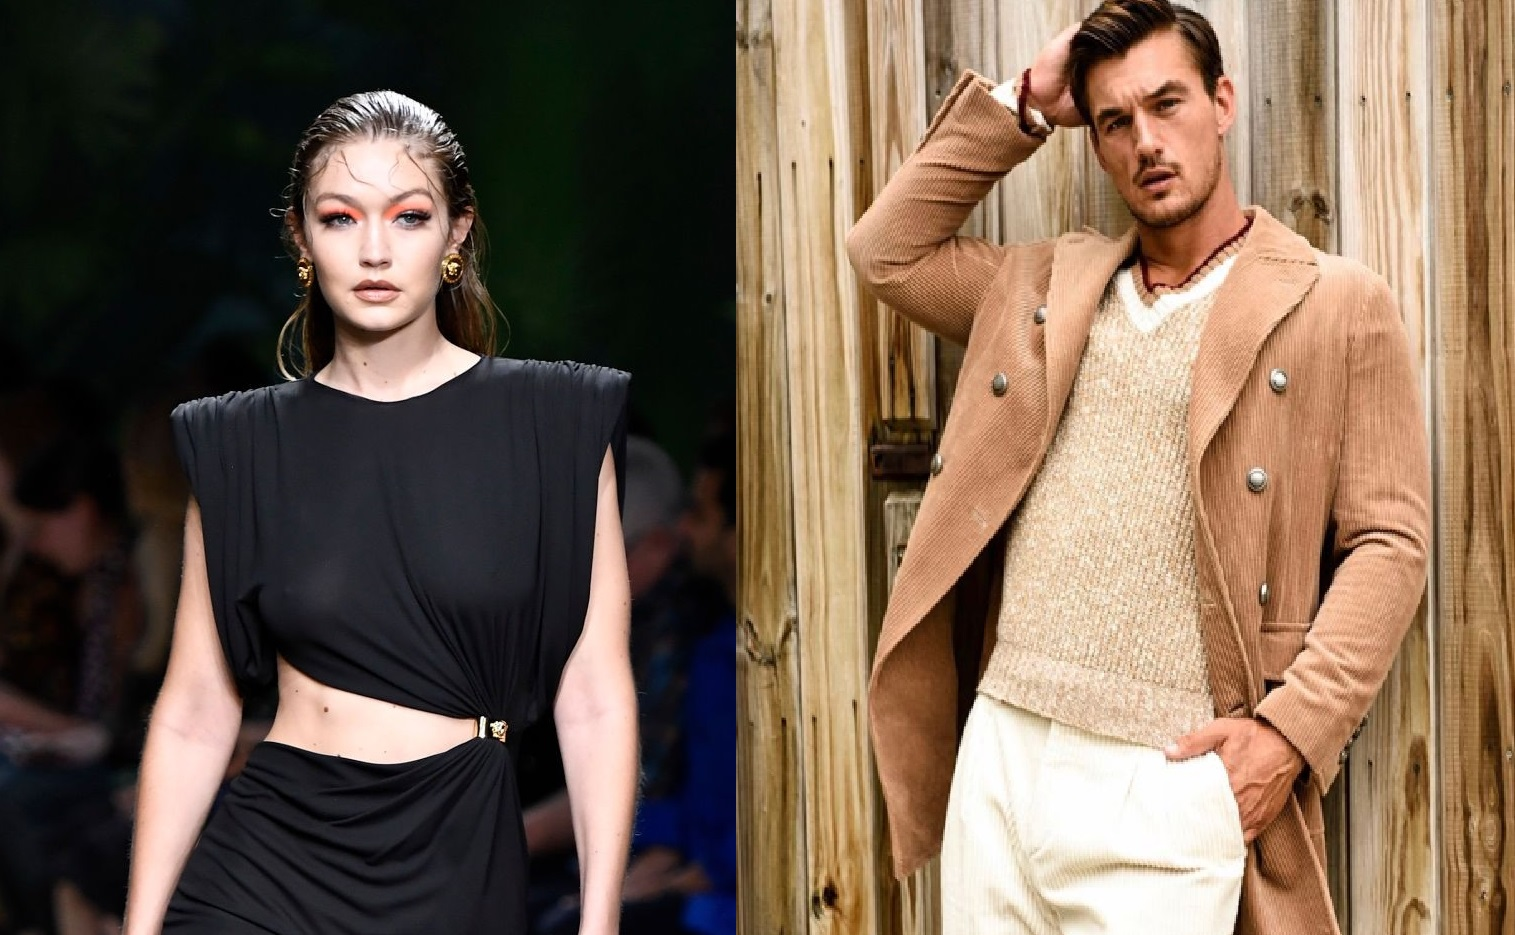 Gigi Hadid rumored beau Tyler Cameron finds an apartment in NYC